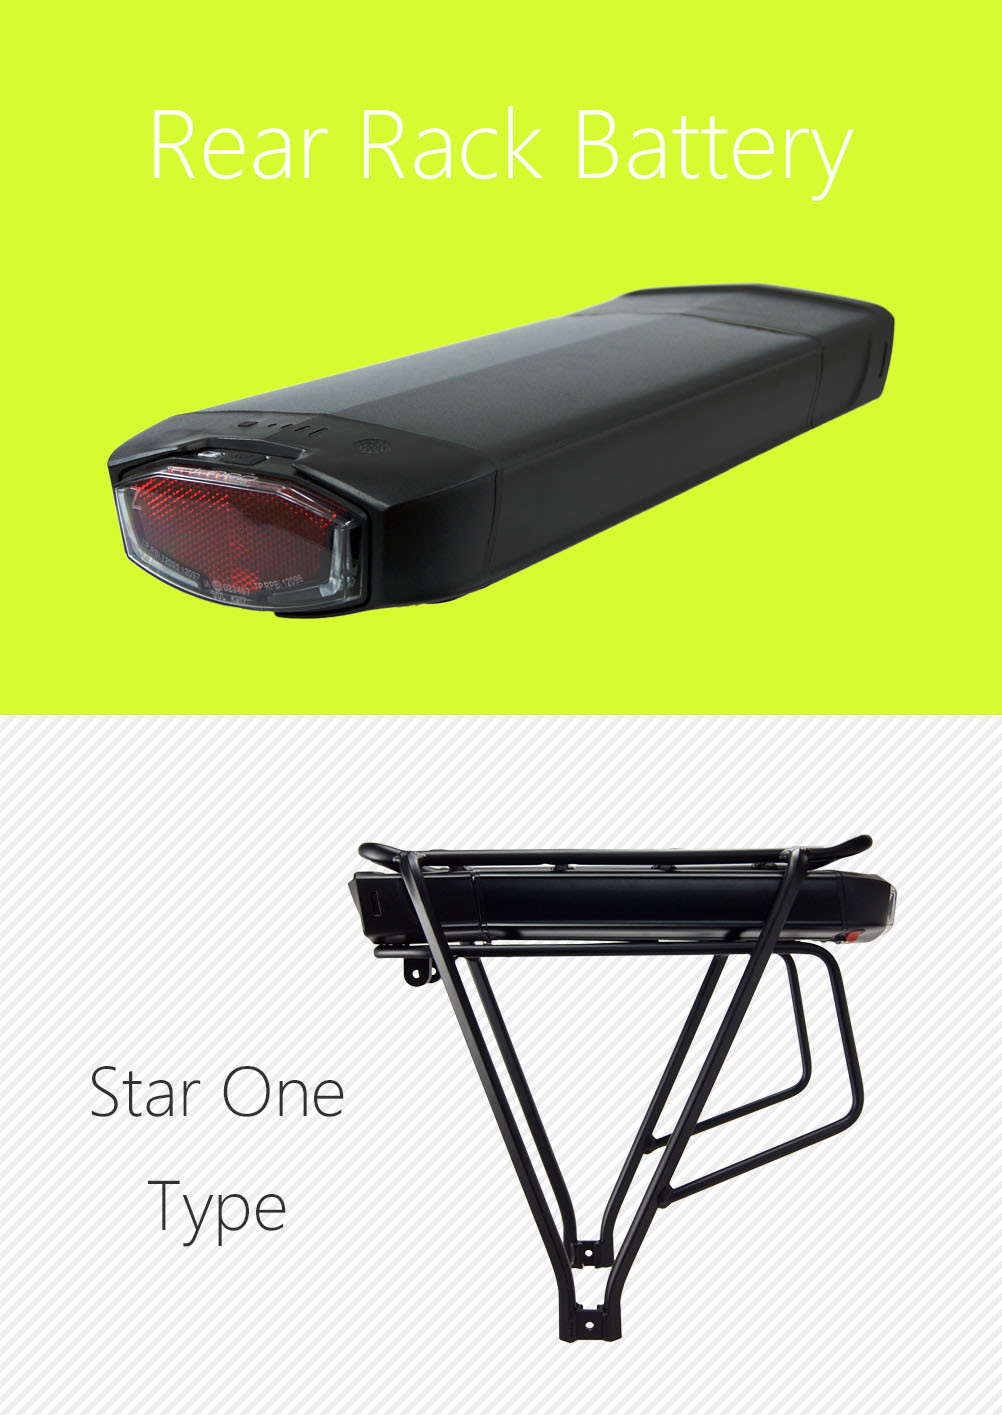 48V 11.6ah 2900mAh Lithium Battery Pack with Rear Rack Case for Electric Bike